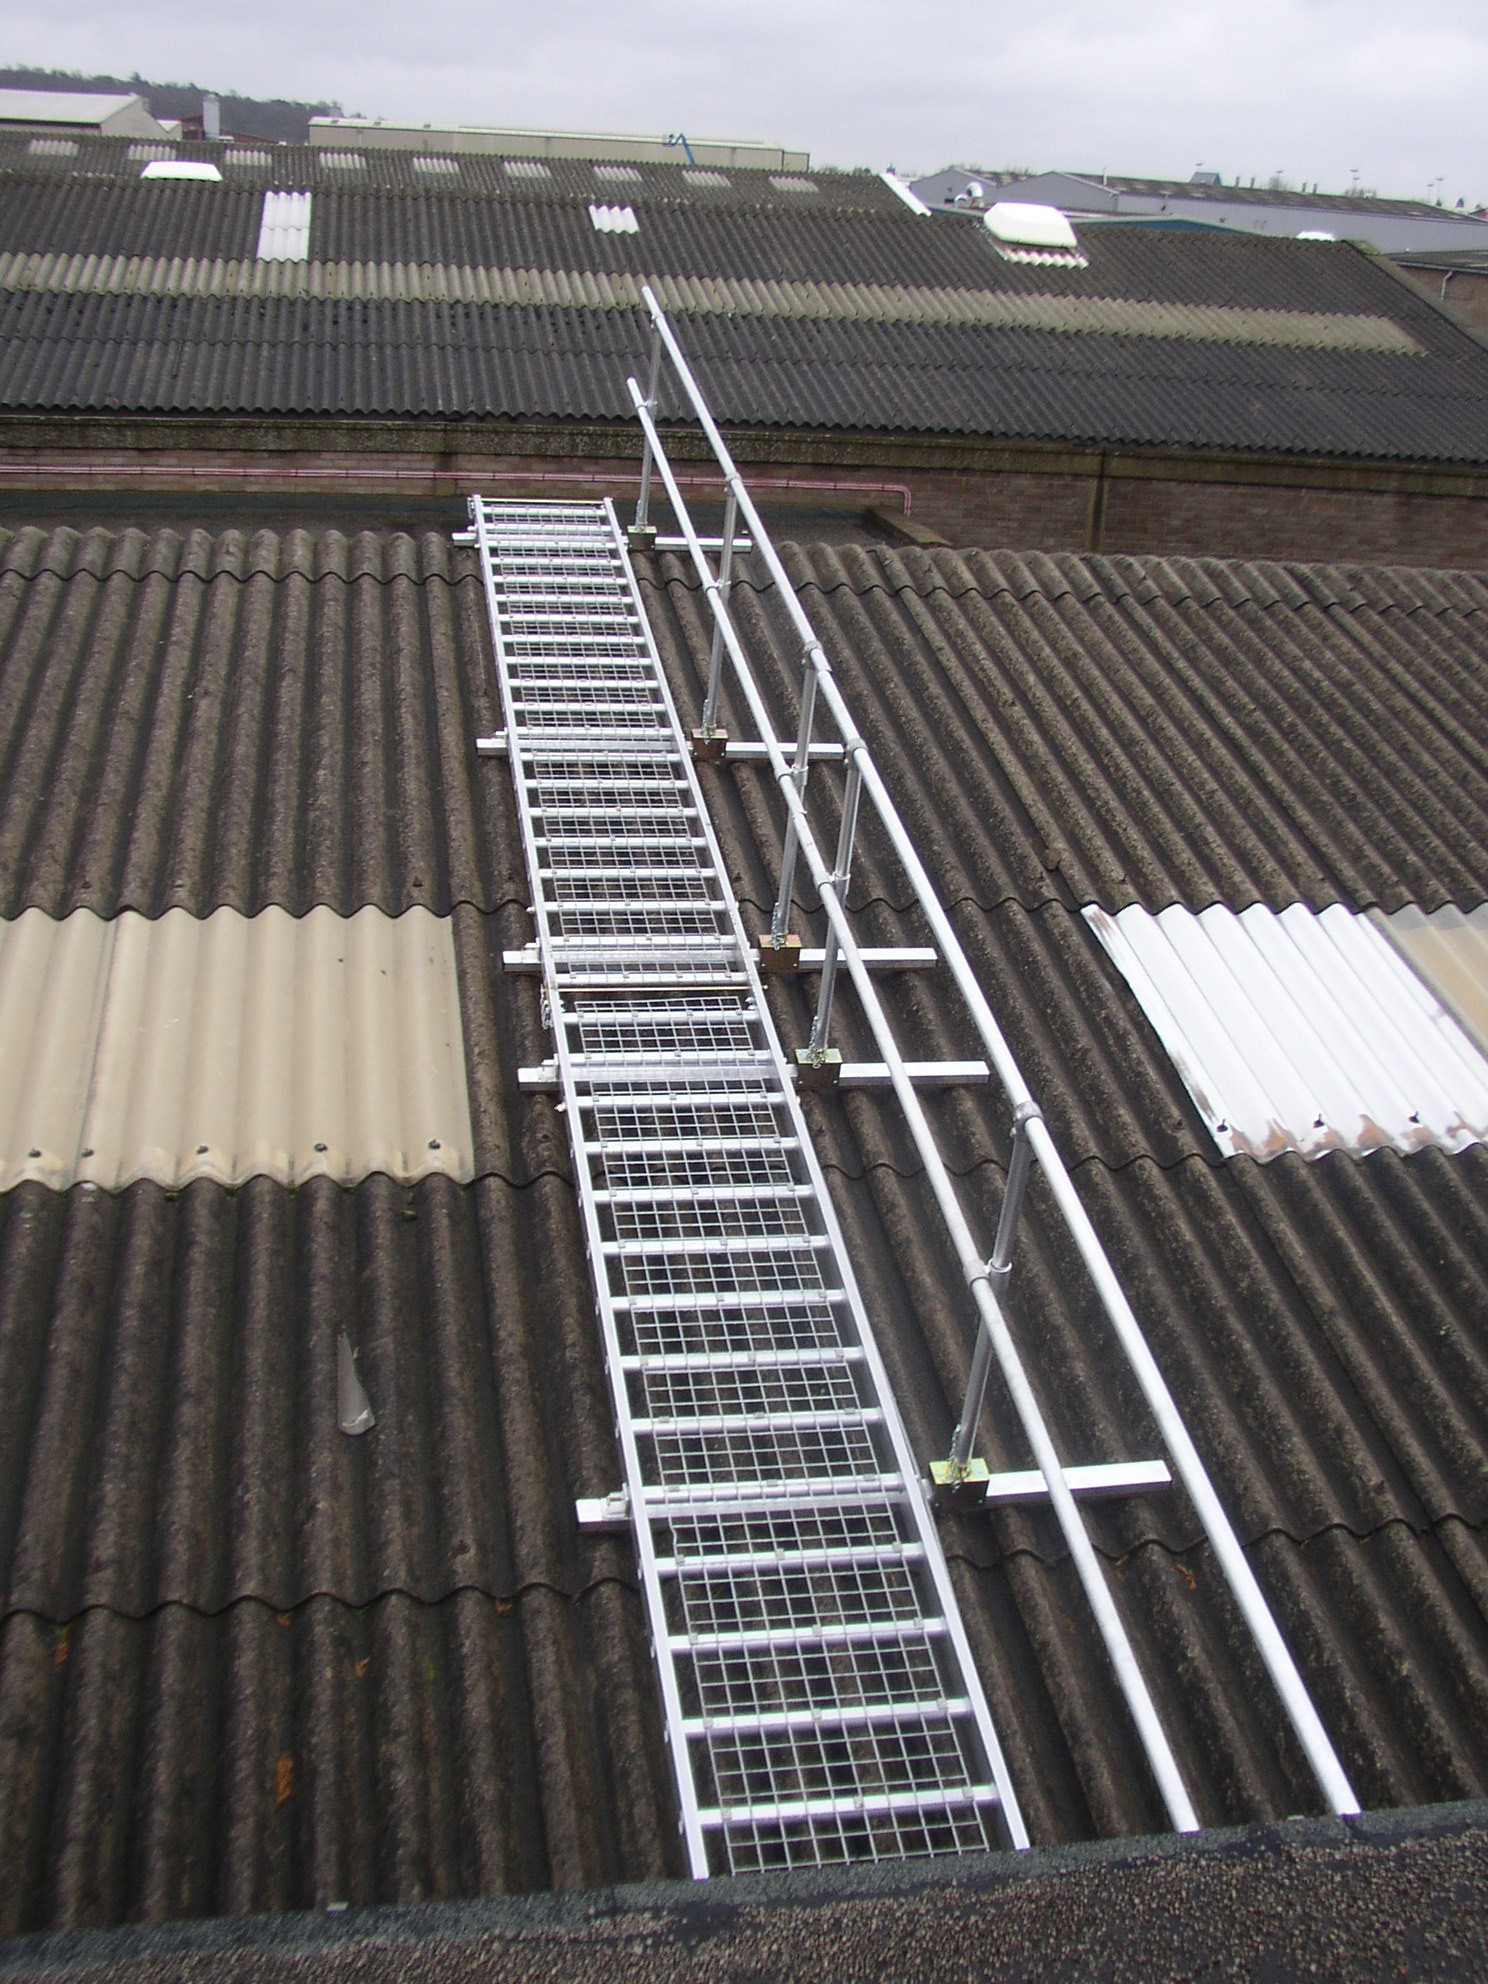 Roof Walk Boards : Board walk roof access equipment and edge protection